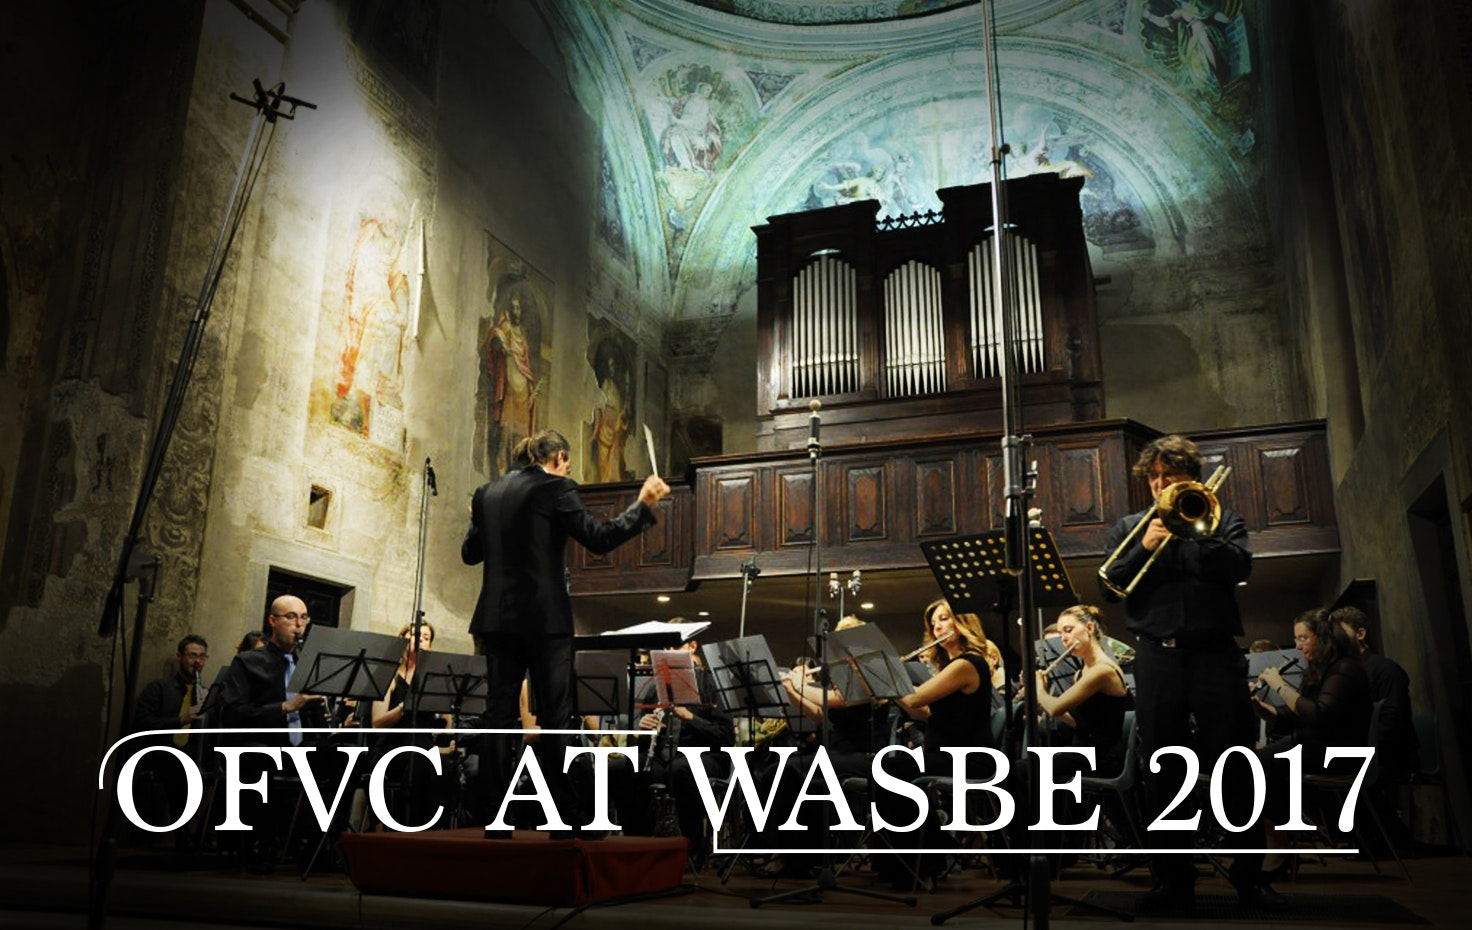 OFVC at Wasbe 2017